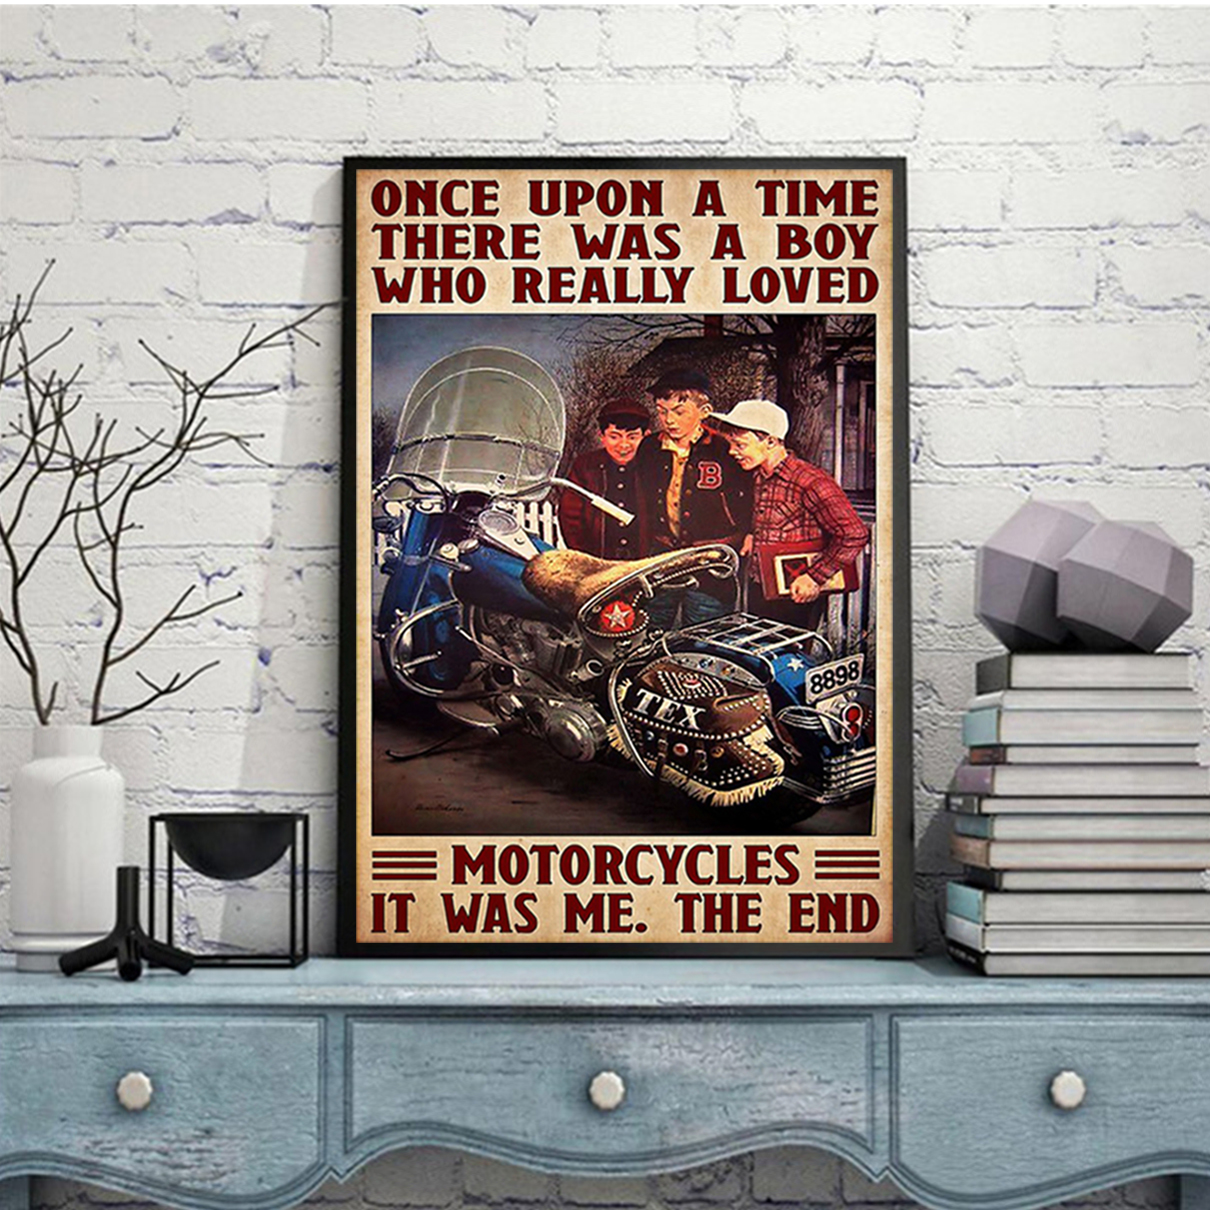 Once upon a time there was a boy who really loved motorcycles poster A2